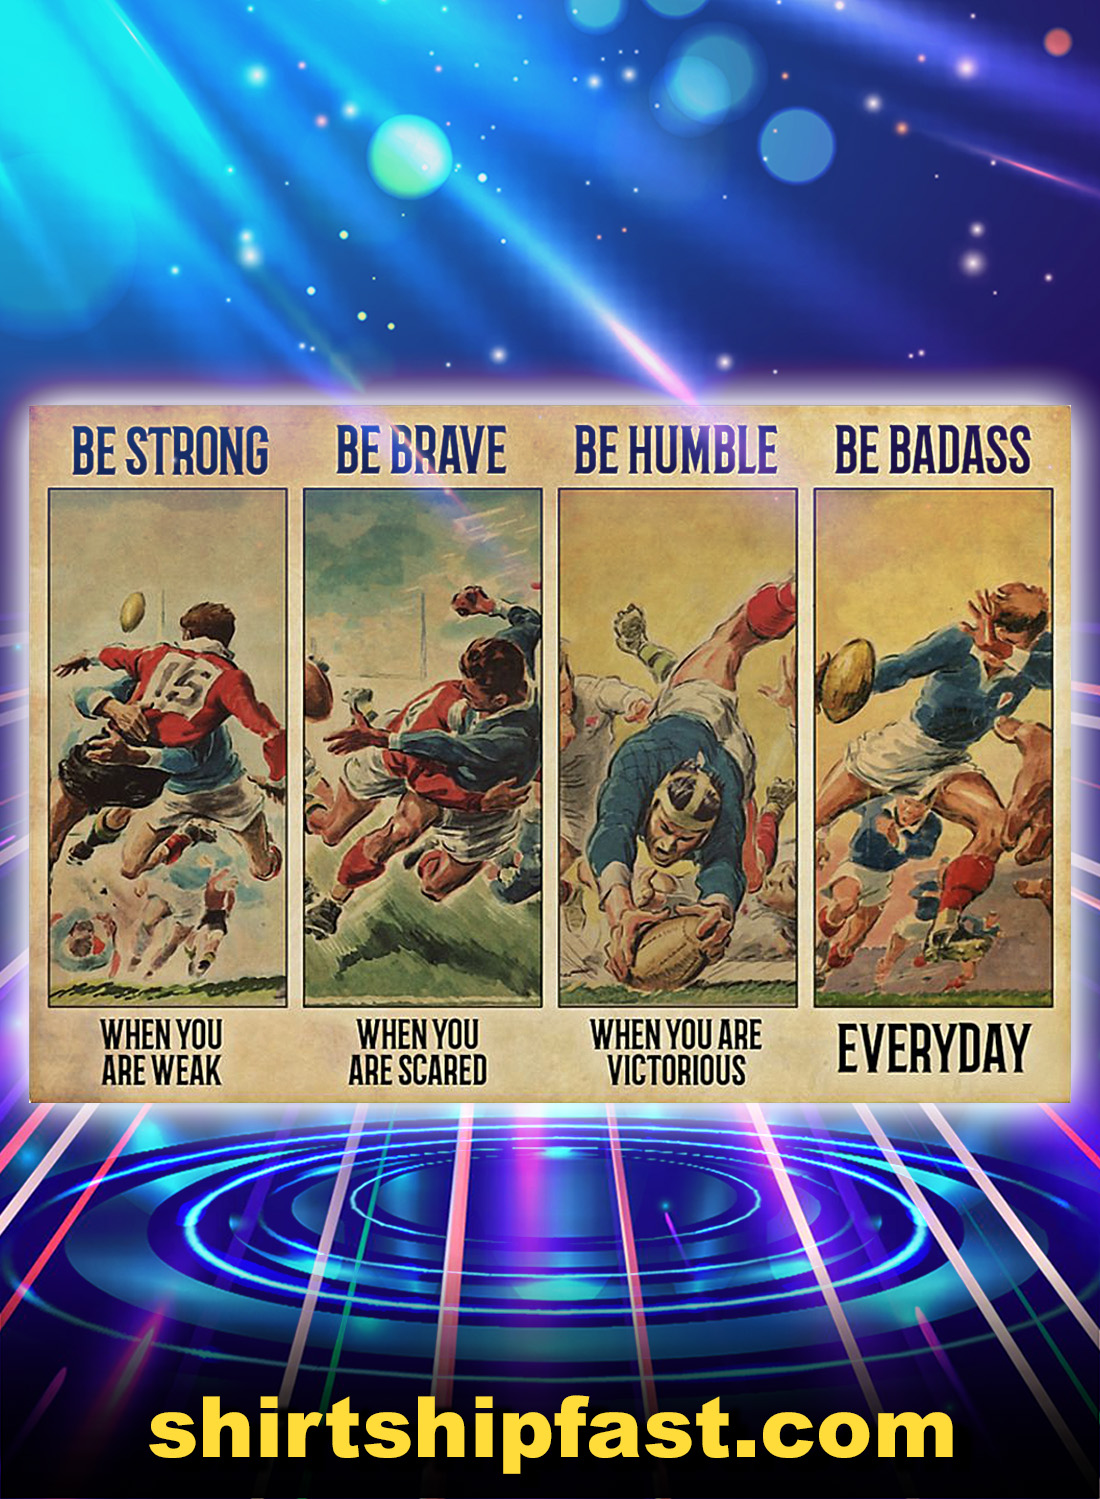 Be strong be brave be humble be badass Rugby poster - A4